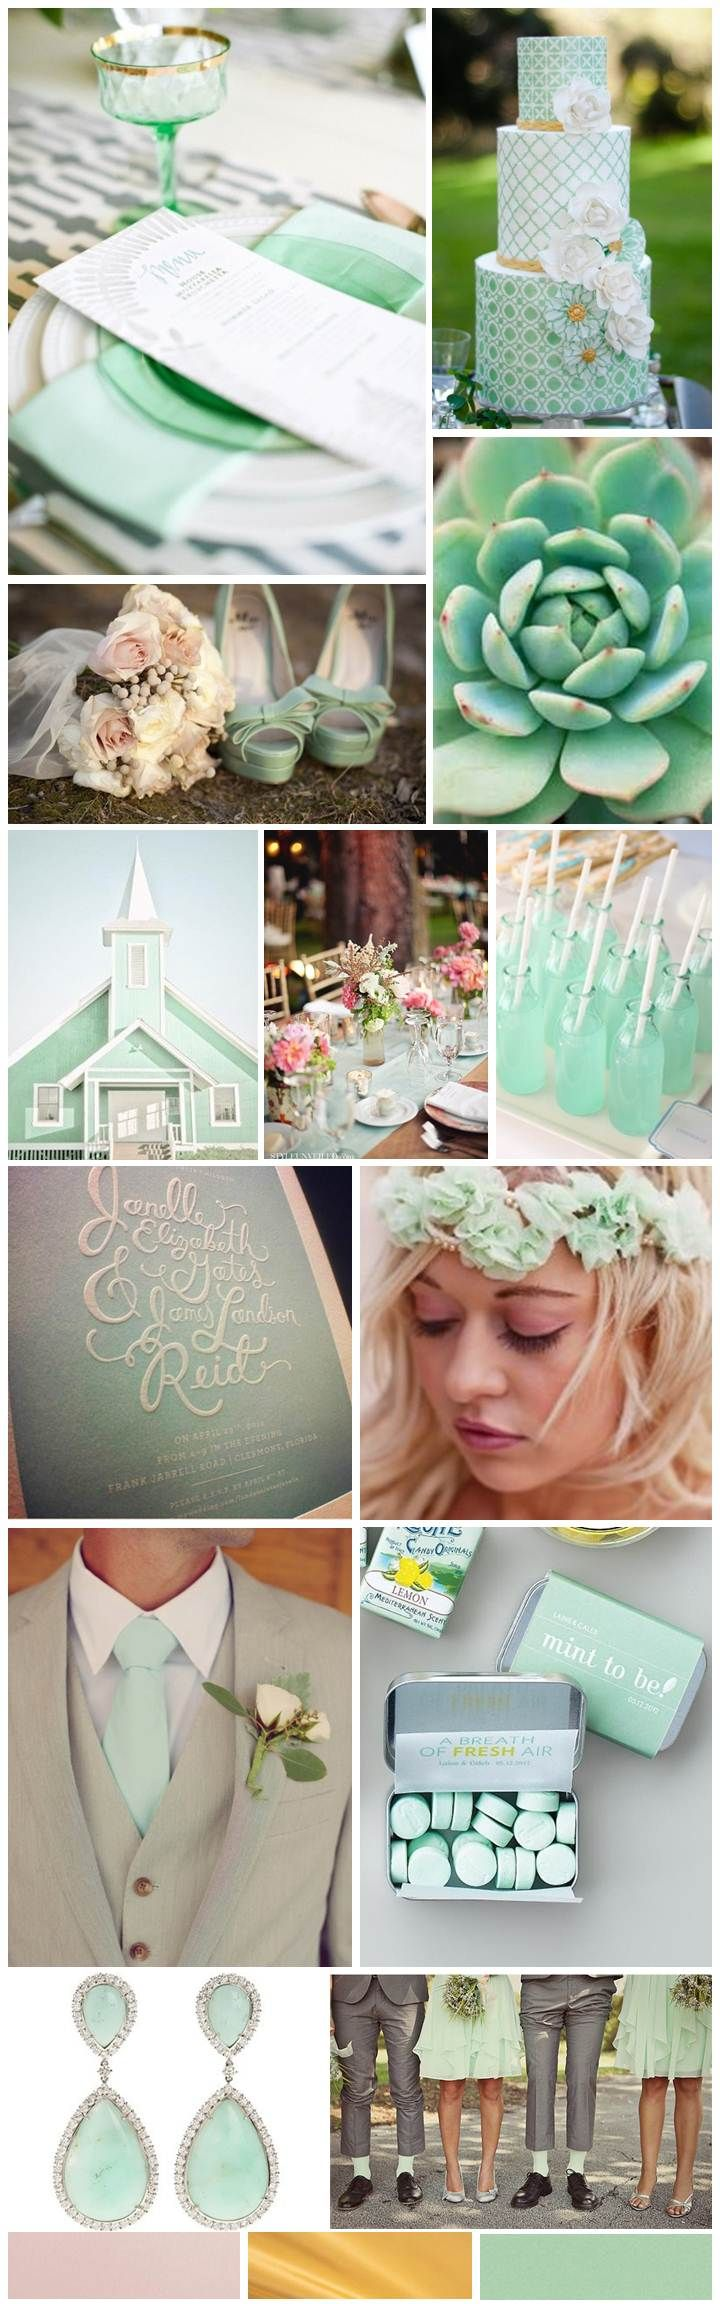 Mint wedding, inspiration board designed by The Simplifiers: Event Planning - Austin, Texas - austin wedding planner